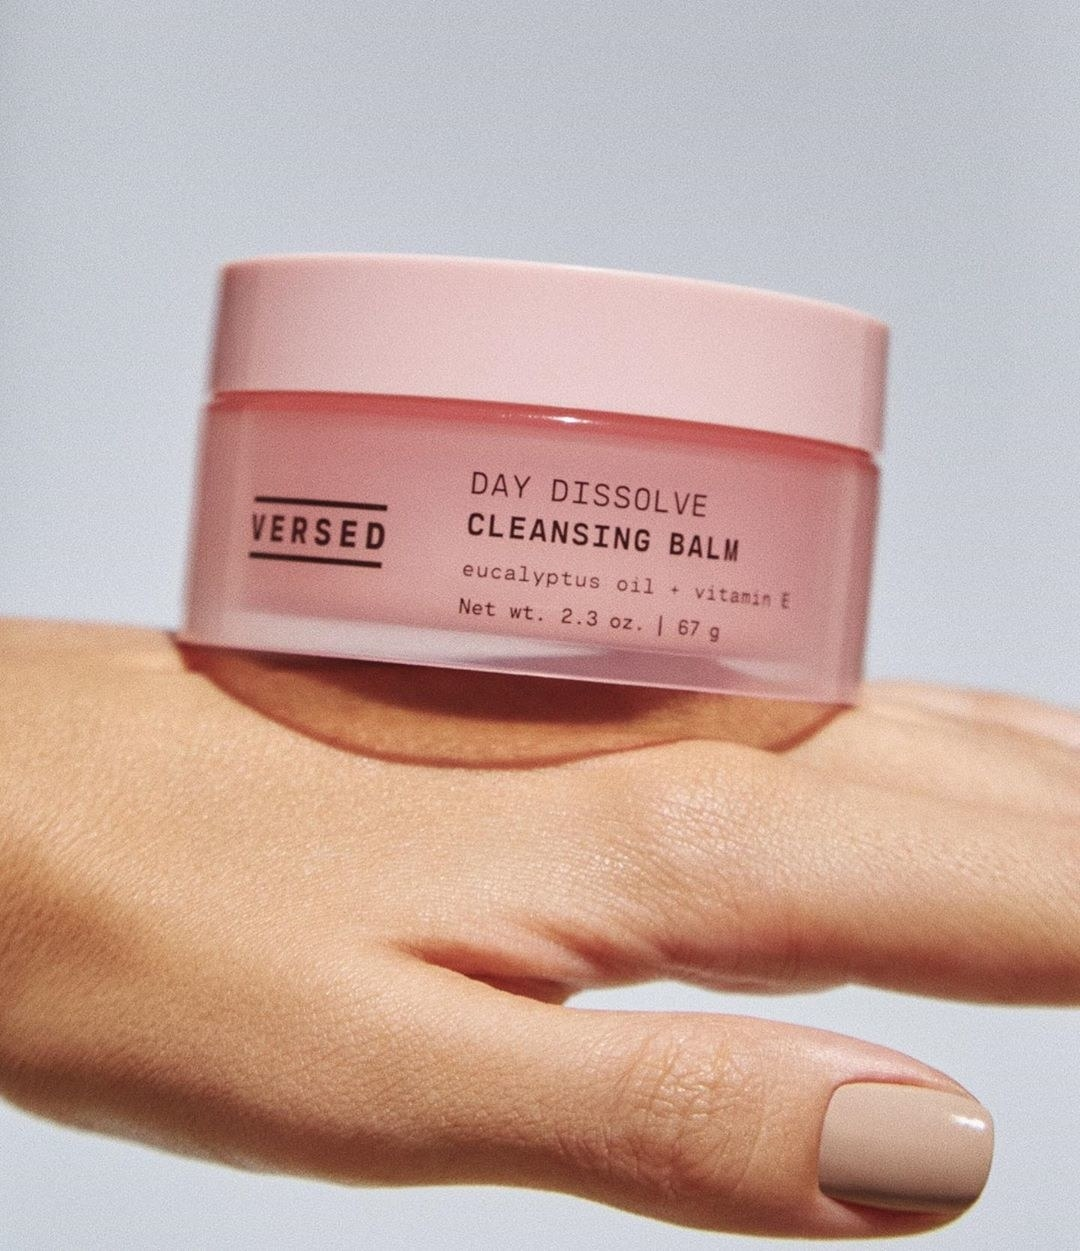 Model's hand holding a jar of the cleansing balm